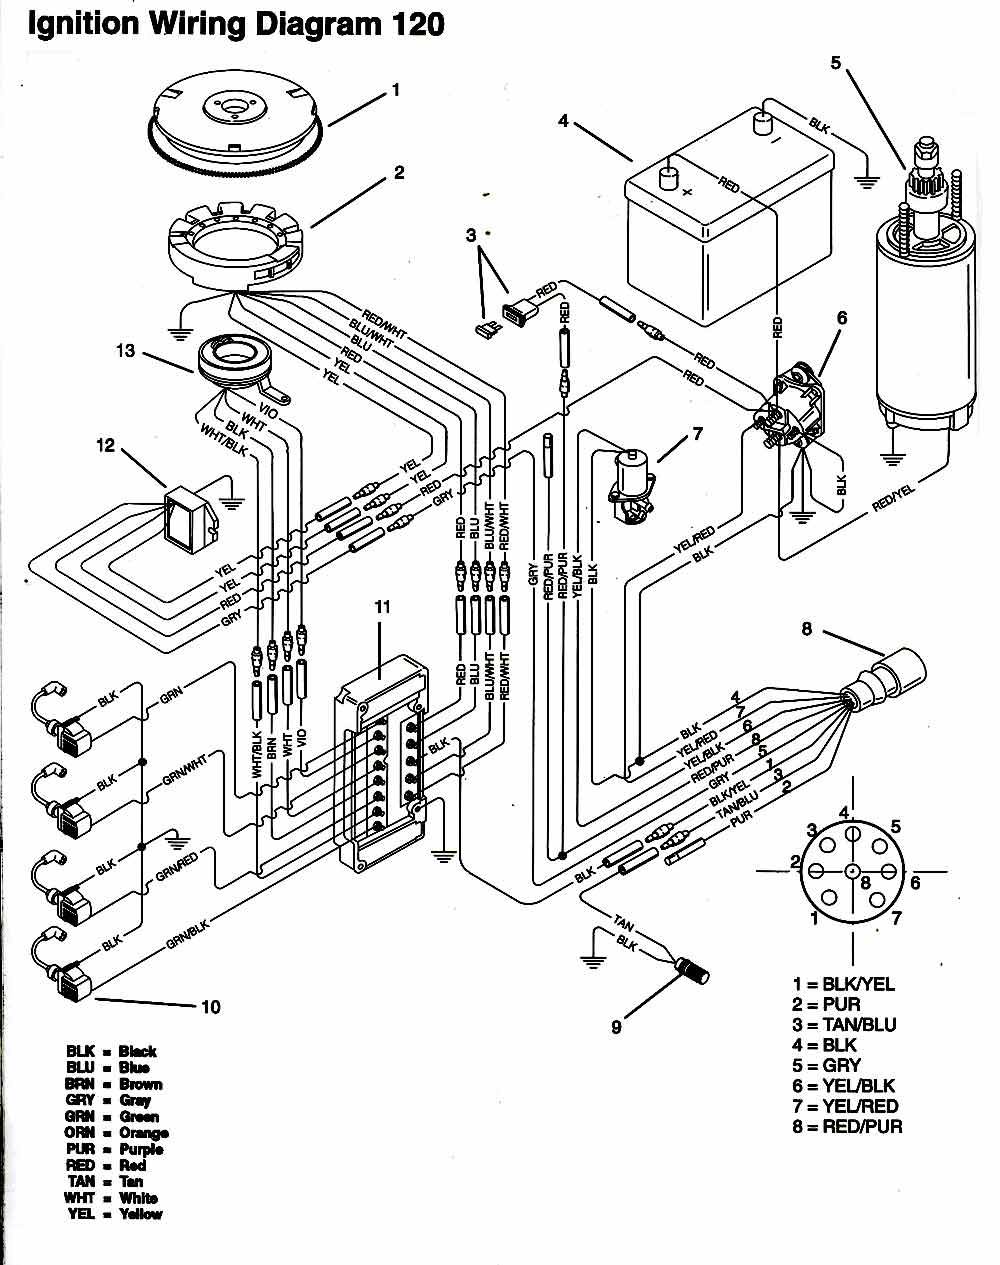 faria marine ignition switch wiring diagram best wiring library rh 98 princestaash org